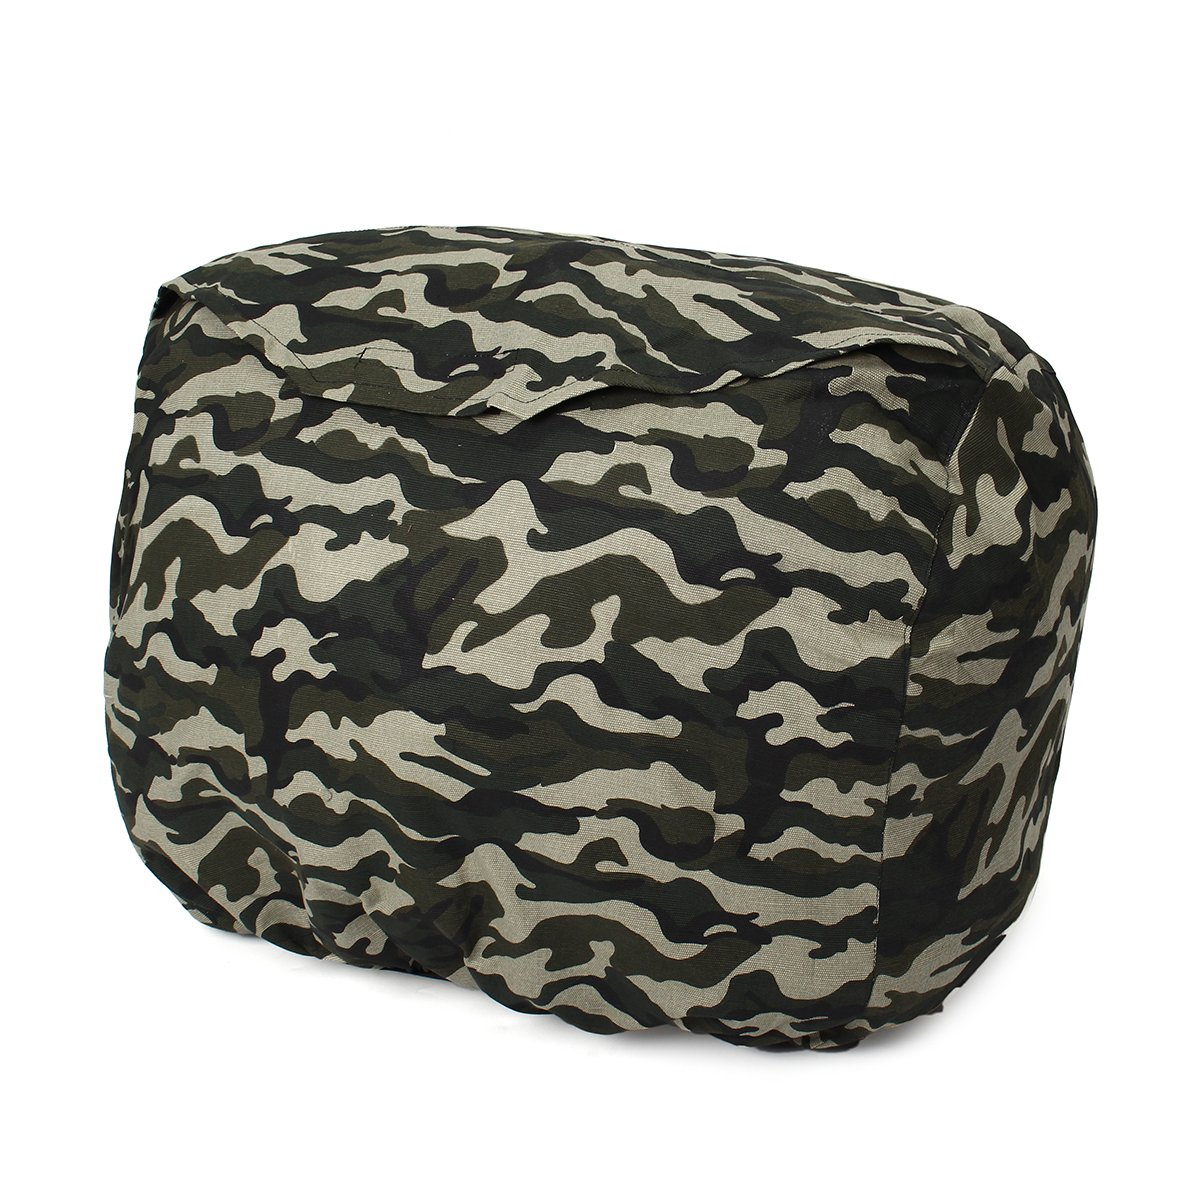 ZHENWOCAI Camouflage Polyester 34x56x47.5cm Dustproof Generator Cover Flap for Honda EU2000i New